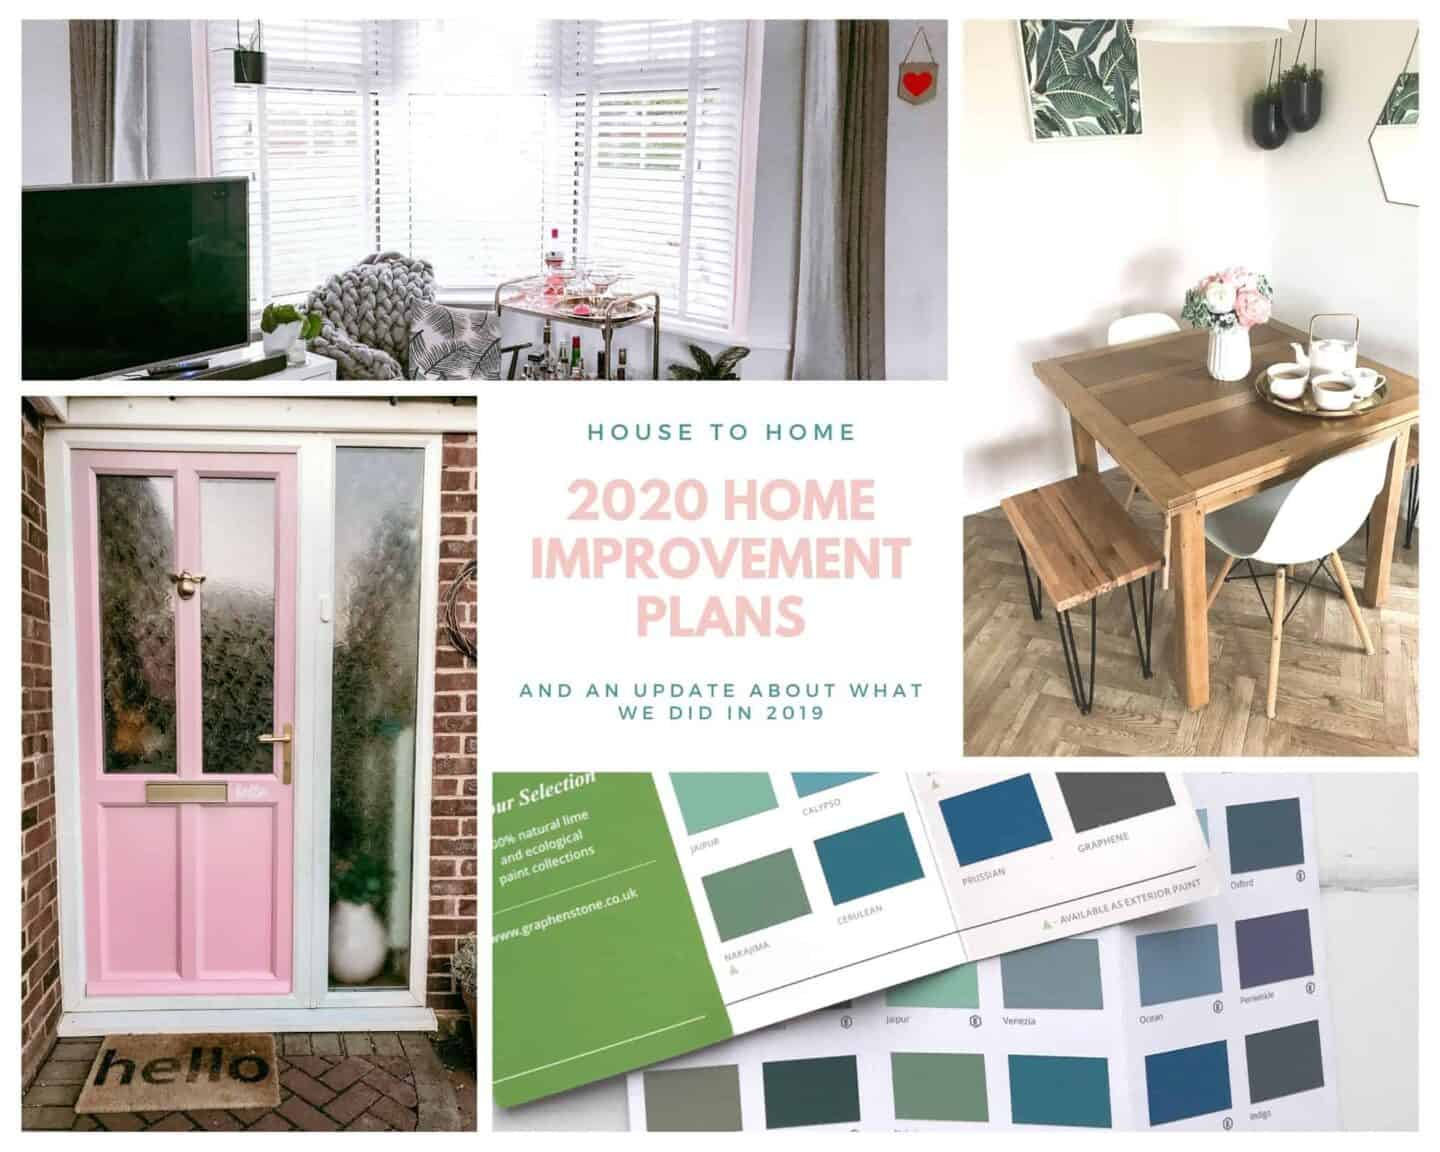 2020 Home Improvement Plans and an update about what we did in 2019